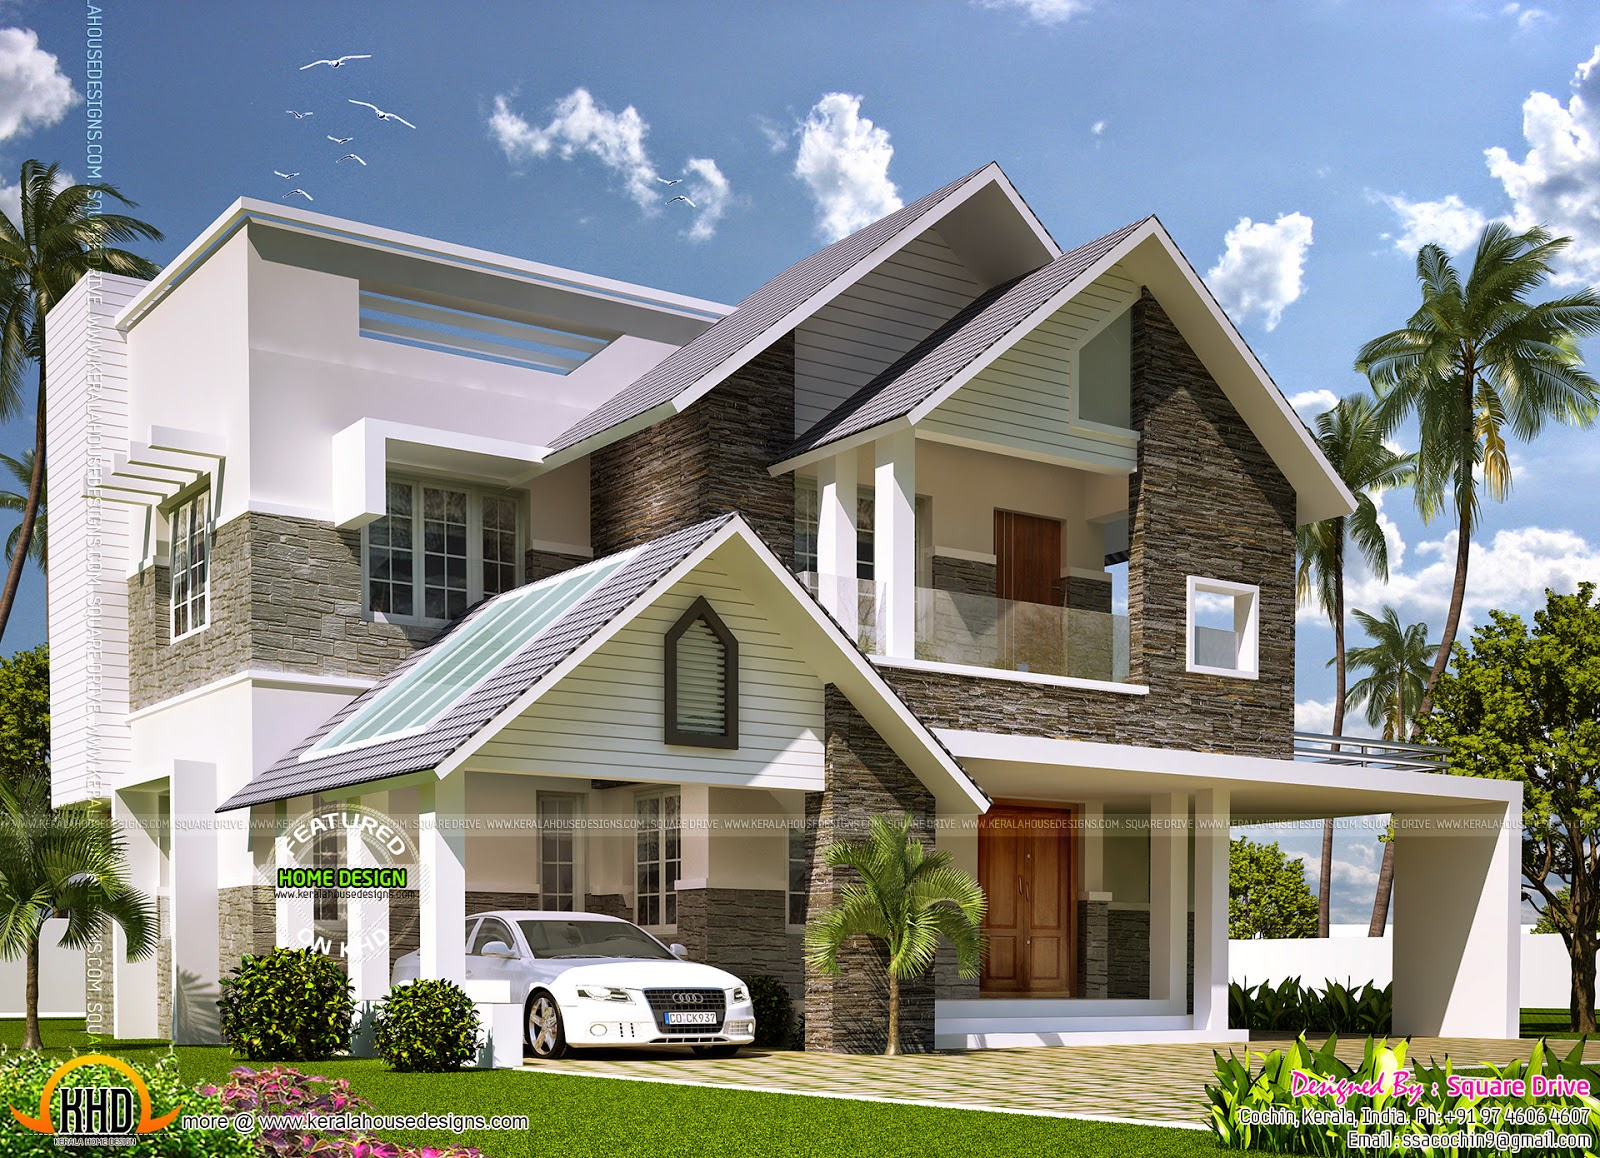 Modern sloping roof mix villa exterior Kerala home design and